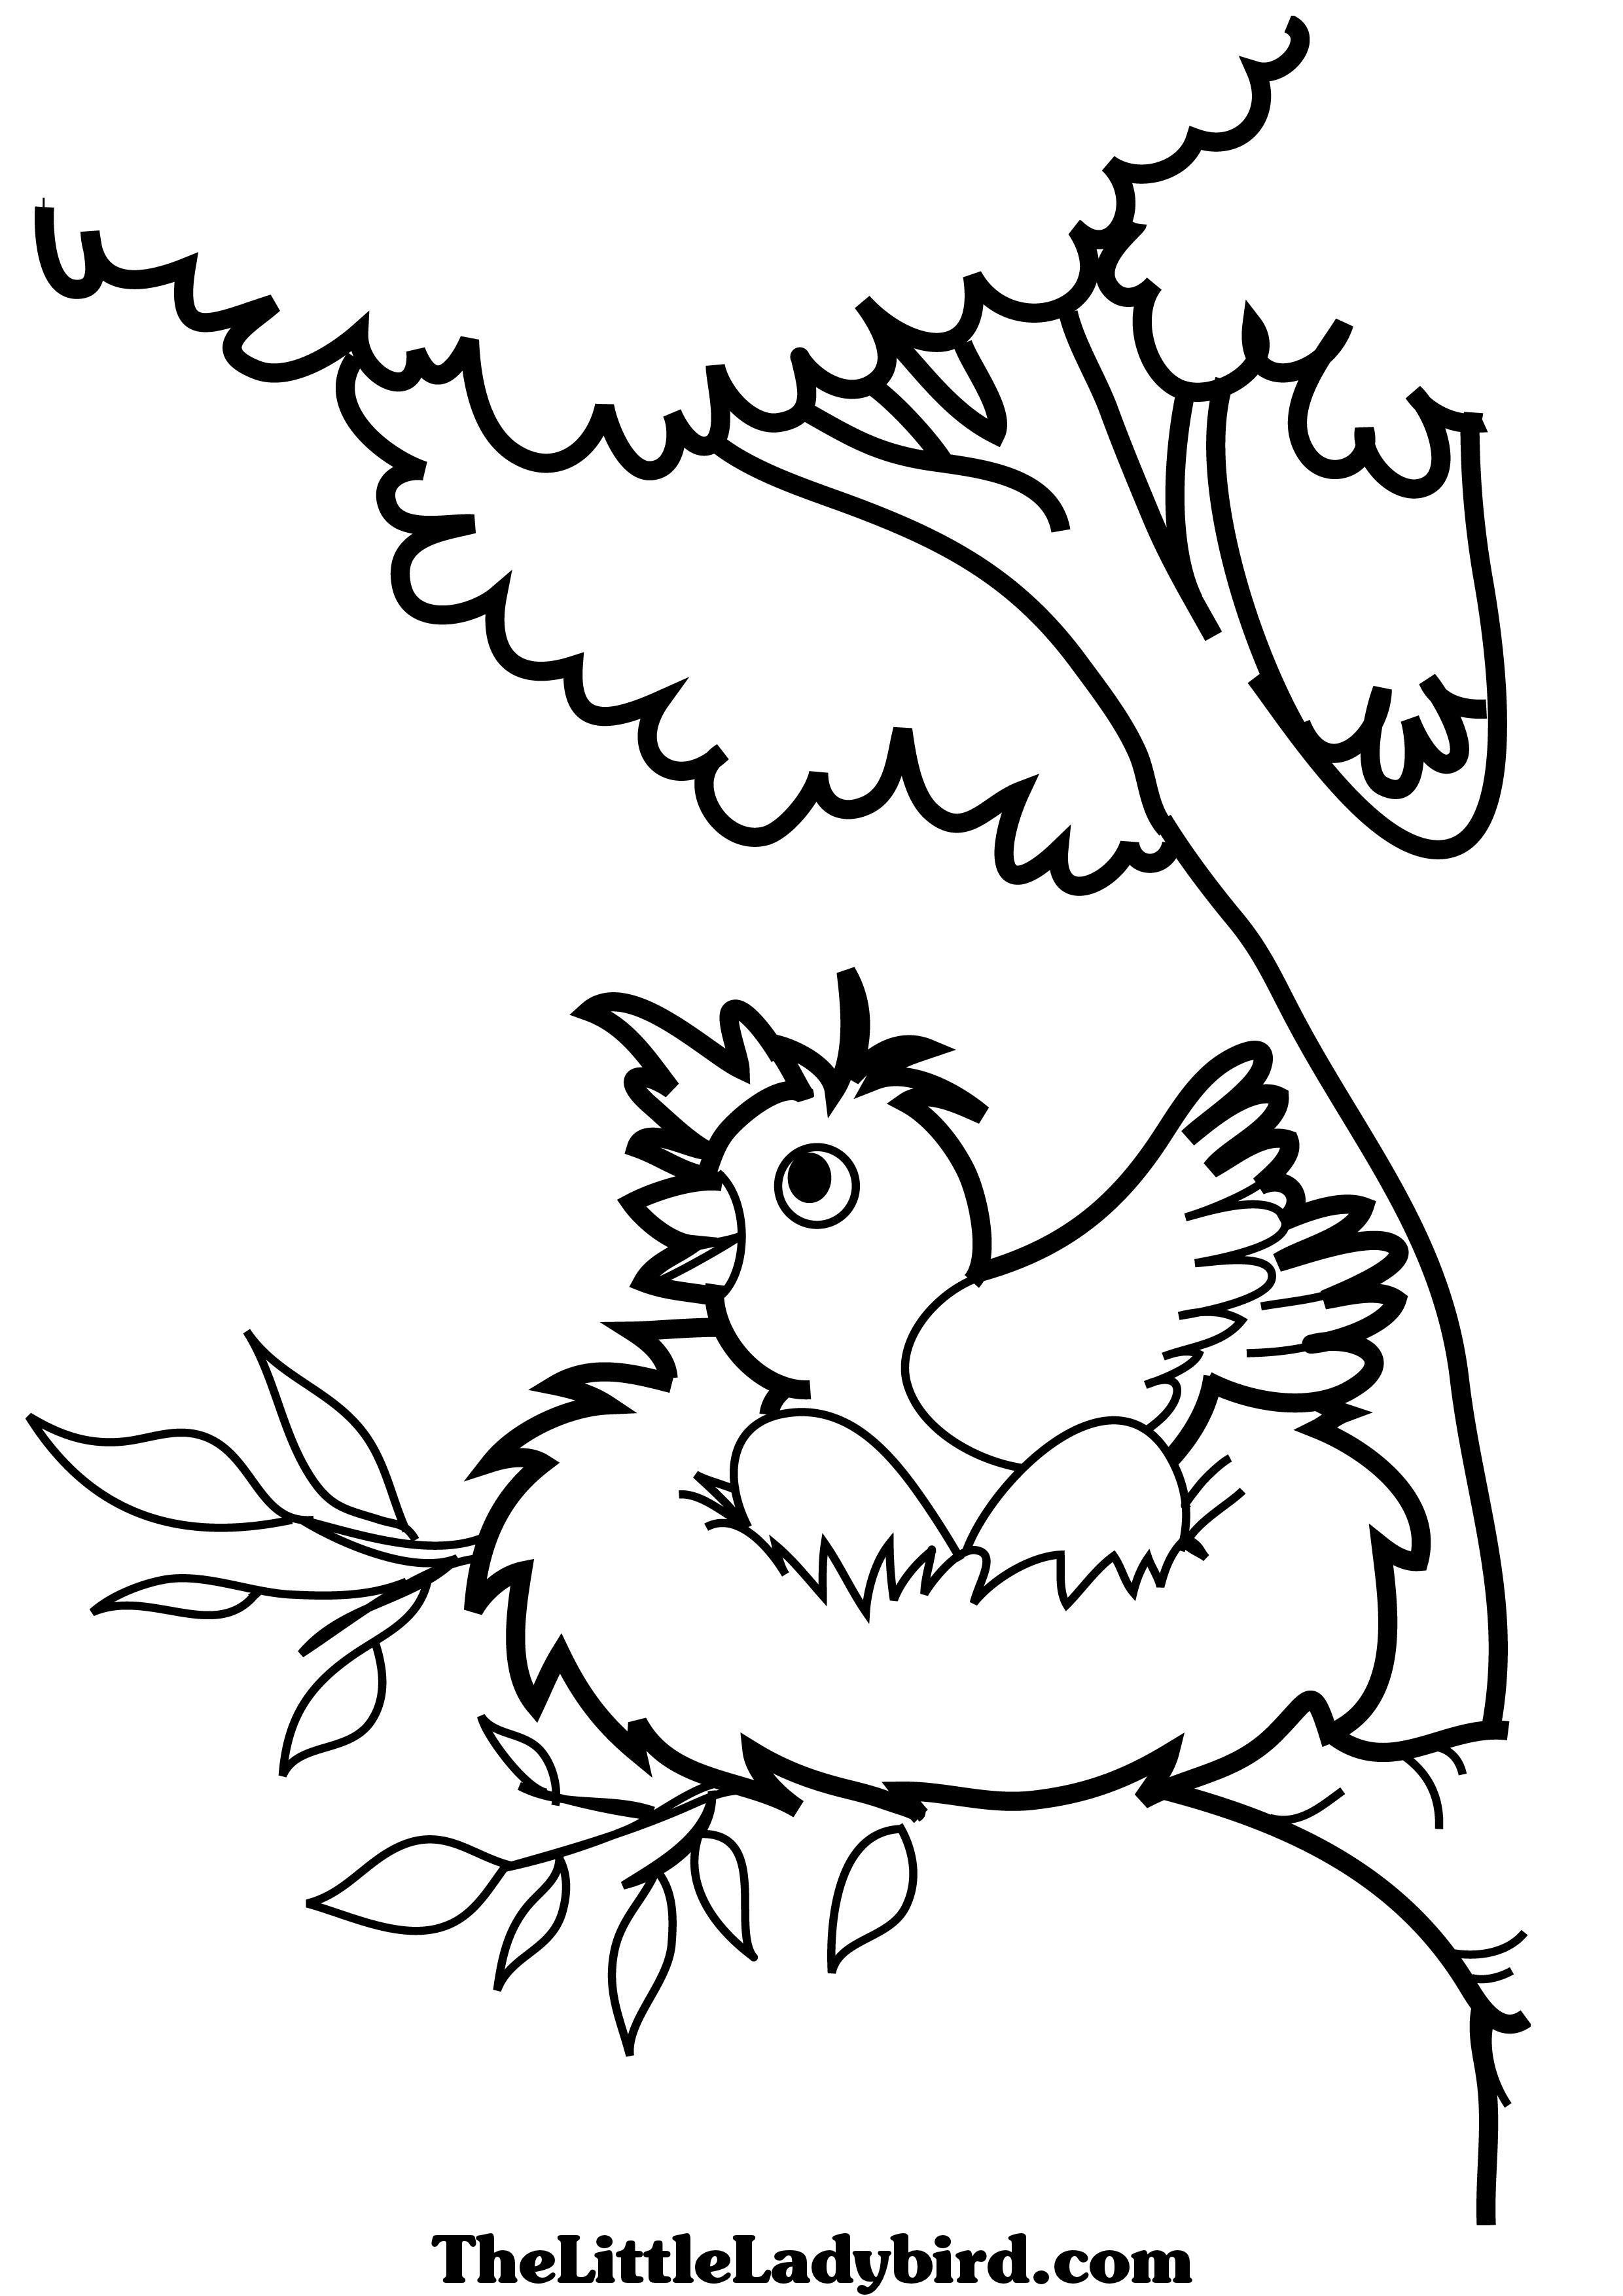 Love Bird Coloring Pages Birds Coloring Pages Thelittleladybird